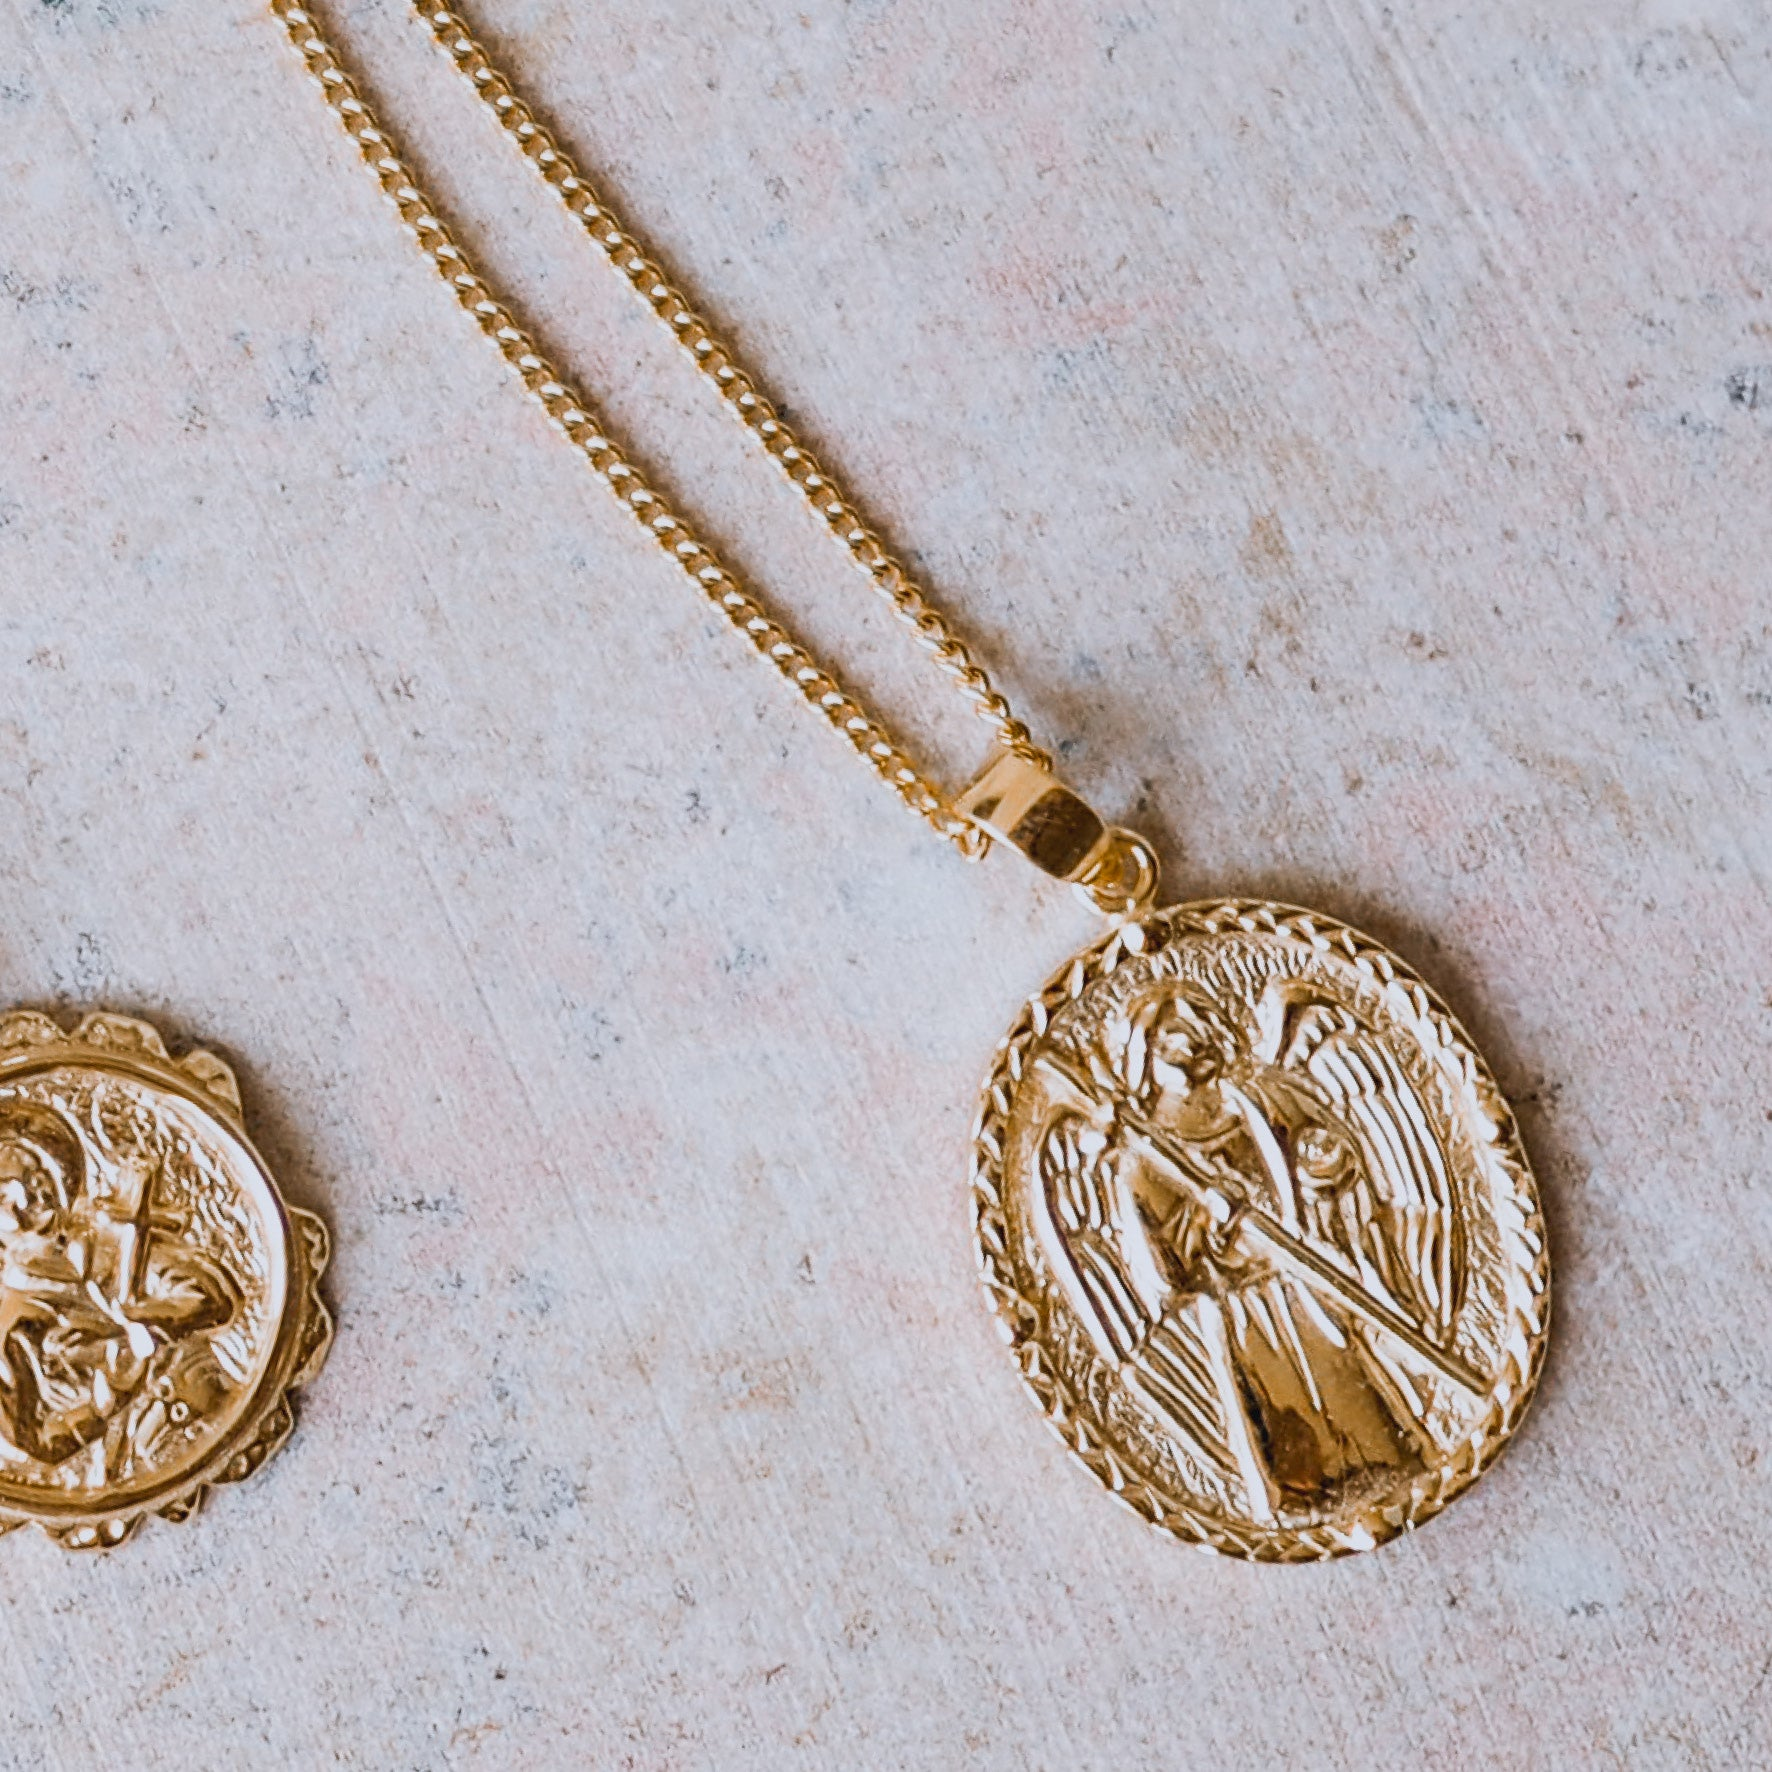 St Raphael - Patron Saint of Happy Meetings, Doctors & Nurses - Gold Pendant Necklace